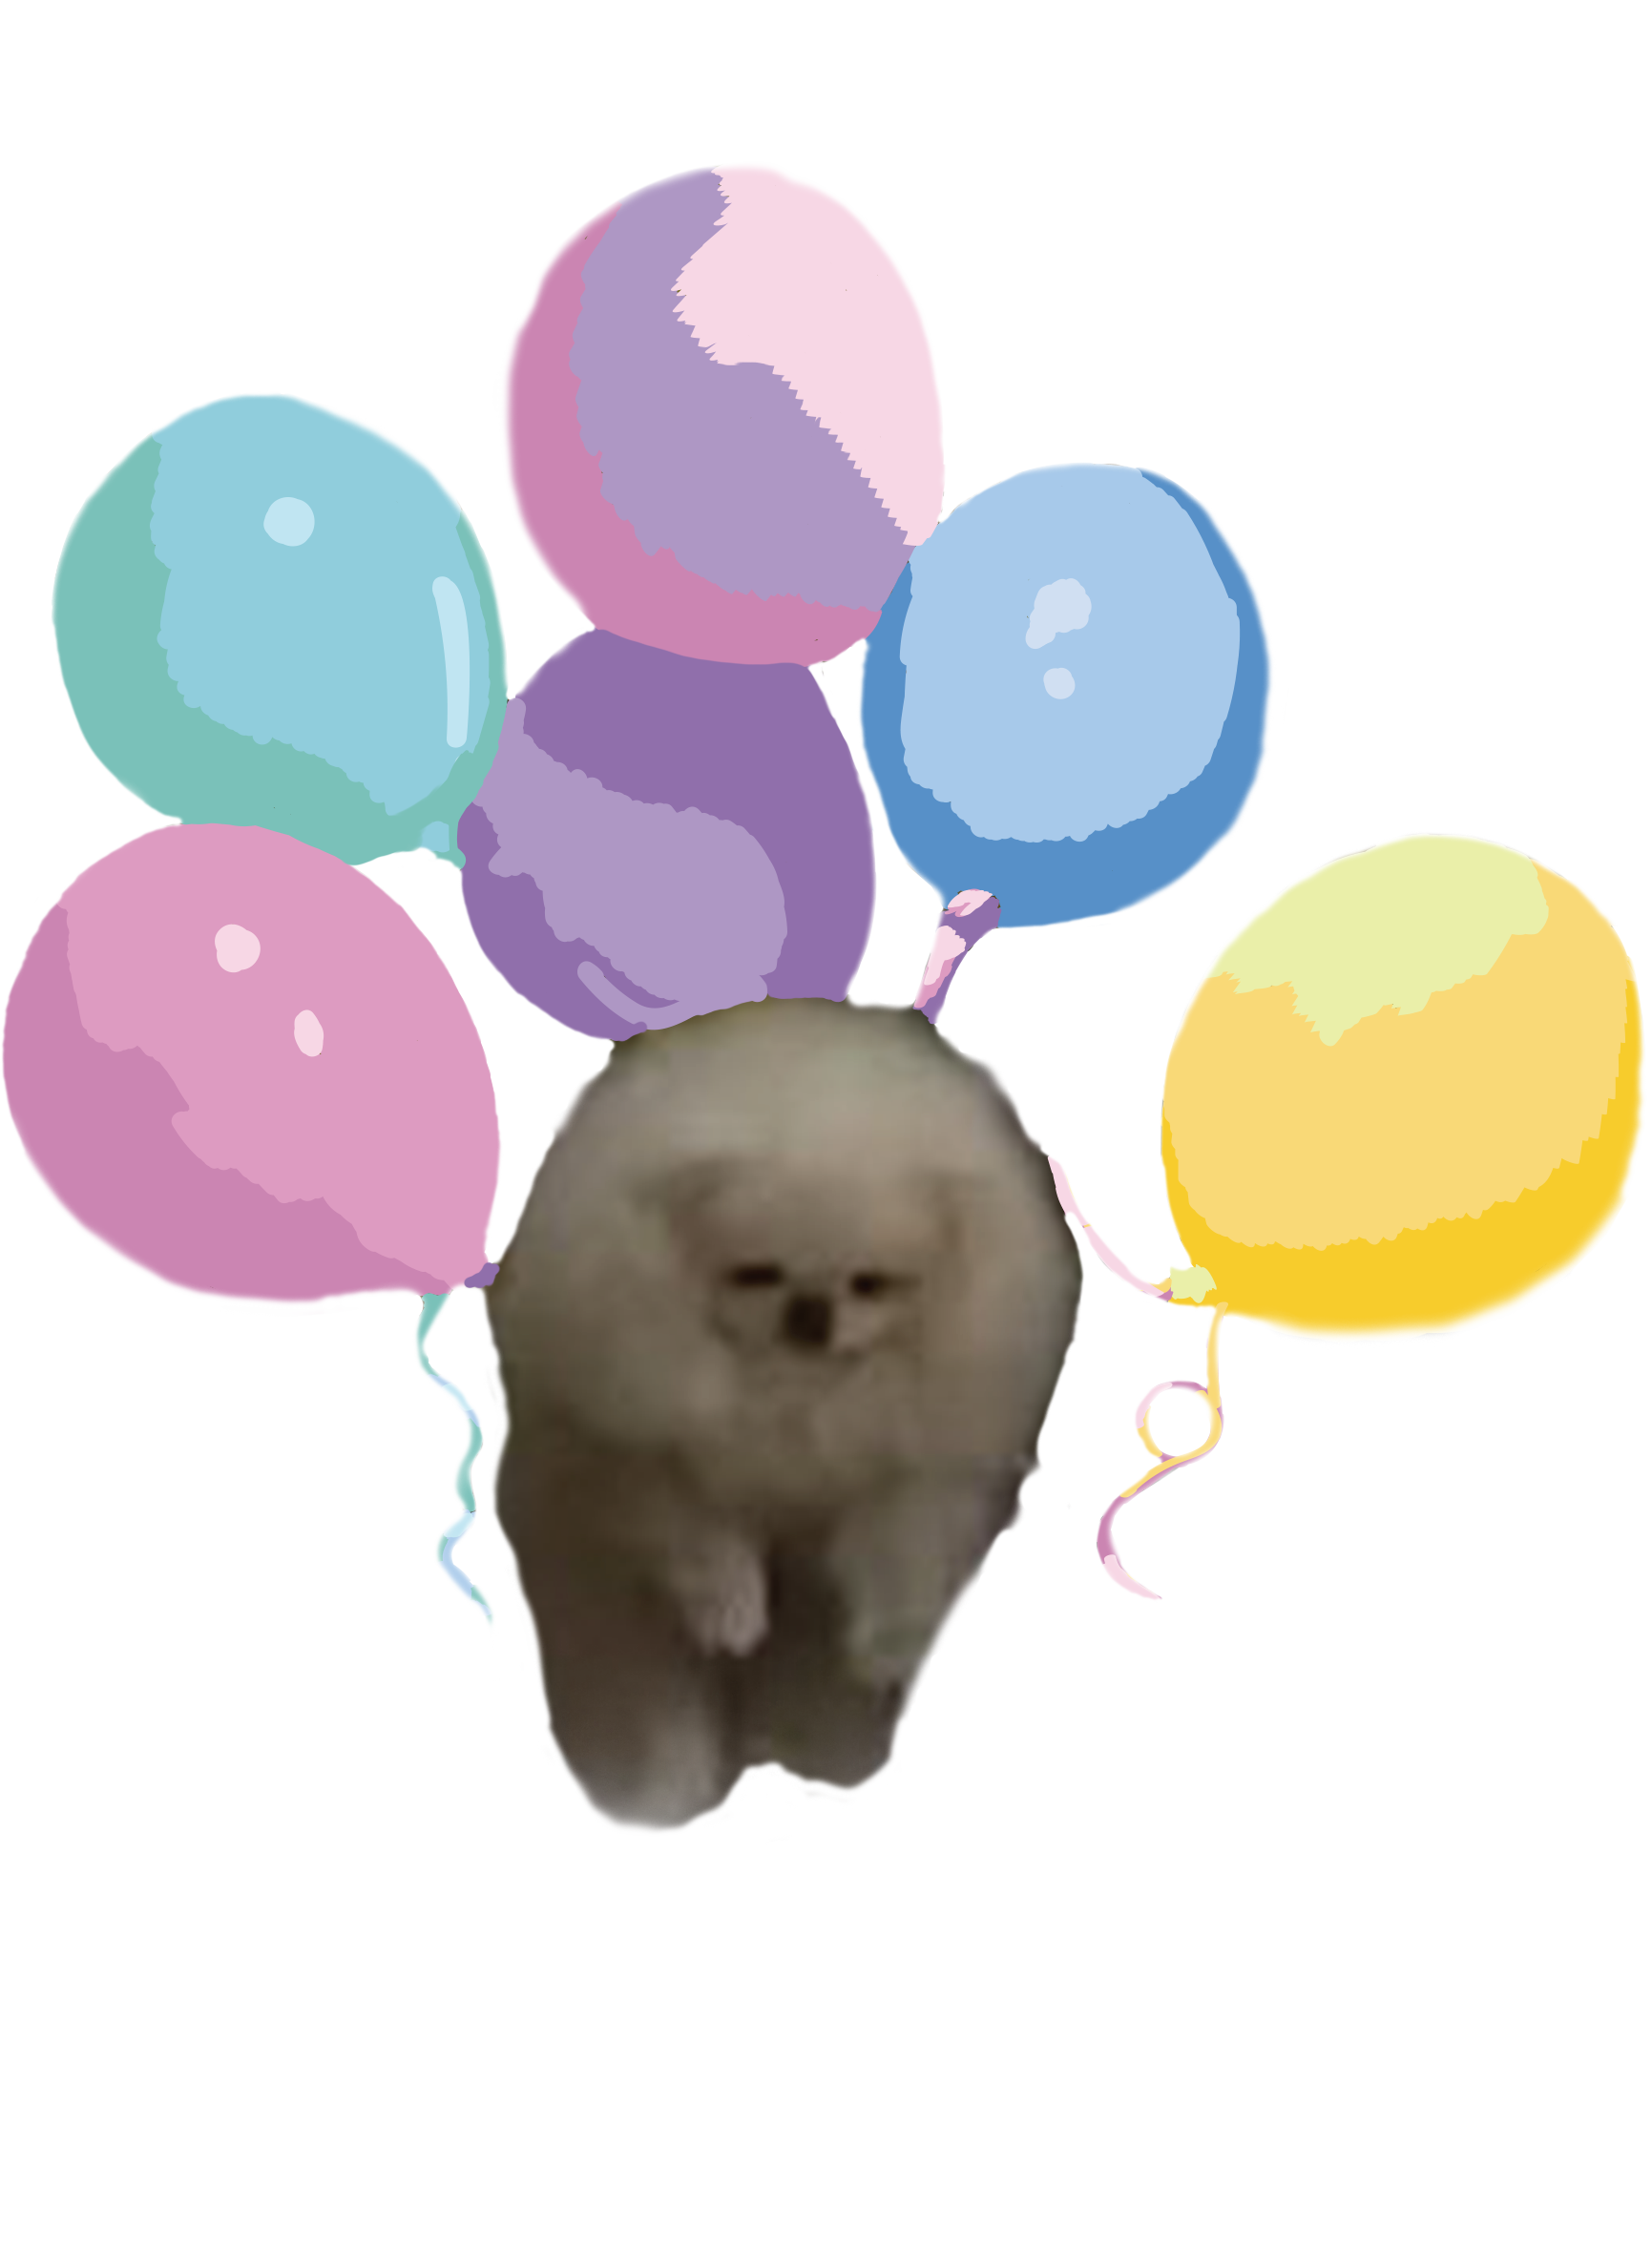 Money flies away clipart svg royalty free download the pomeranian with balloon drawings show how light a pomeranian is ... svg royalty free download